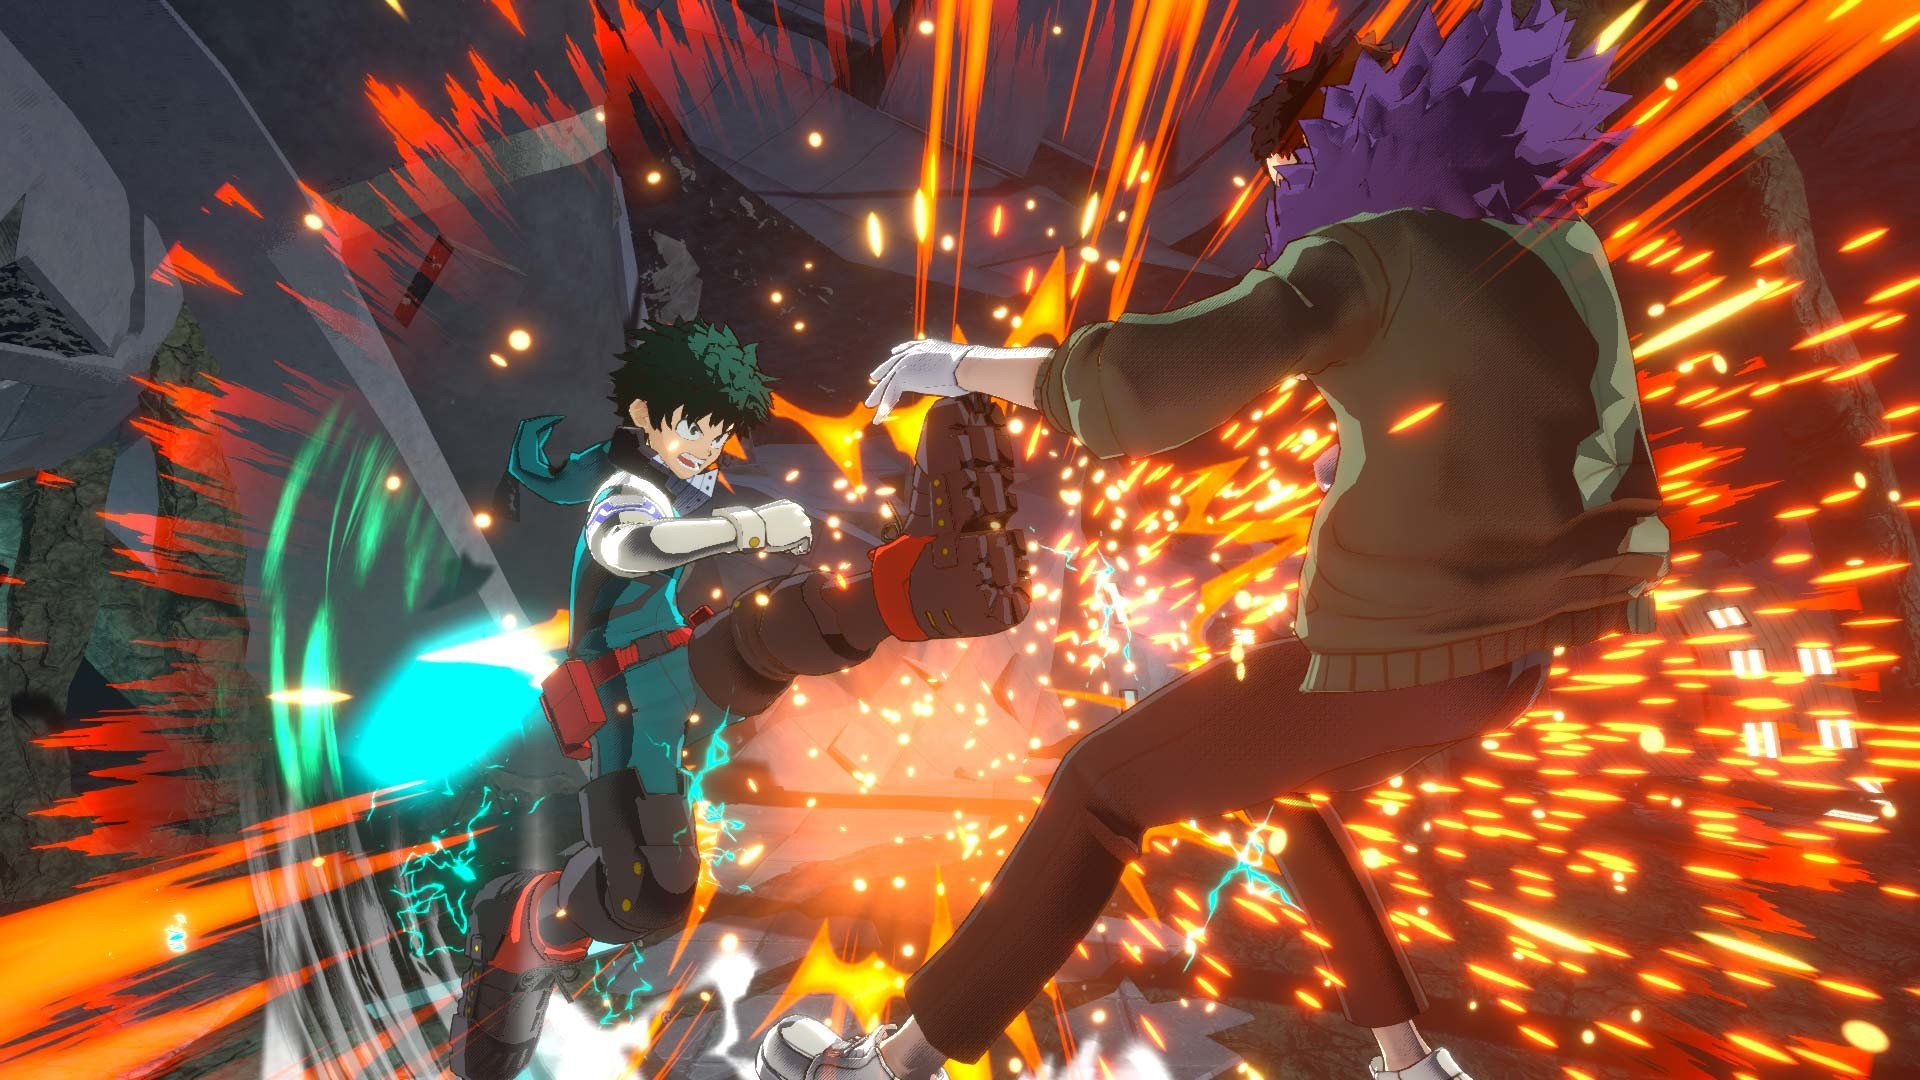 Get a load of the villains in the new My Hero Academia game screenshot